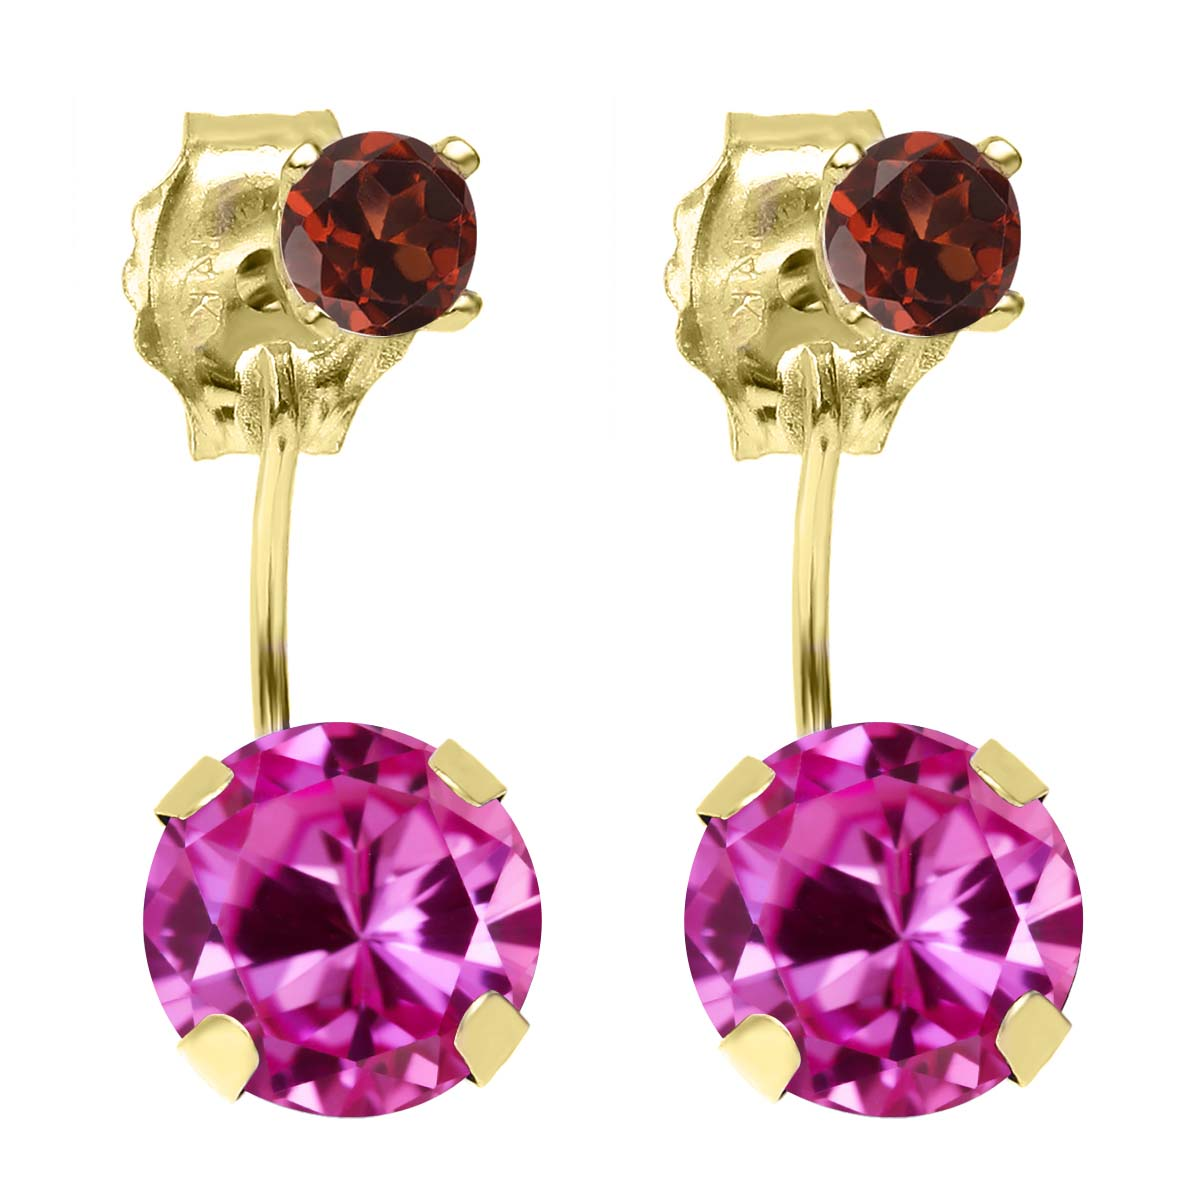 2.24 Ct Round Pink Created Sapphire Red Garnet 14K YG Top&Bottom Earrings by